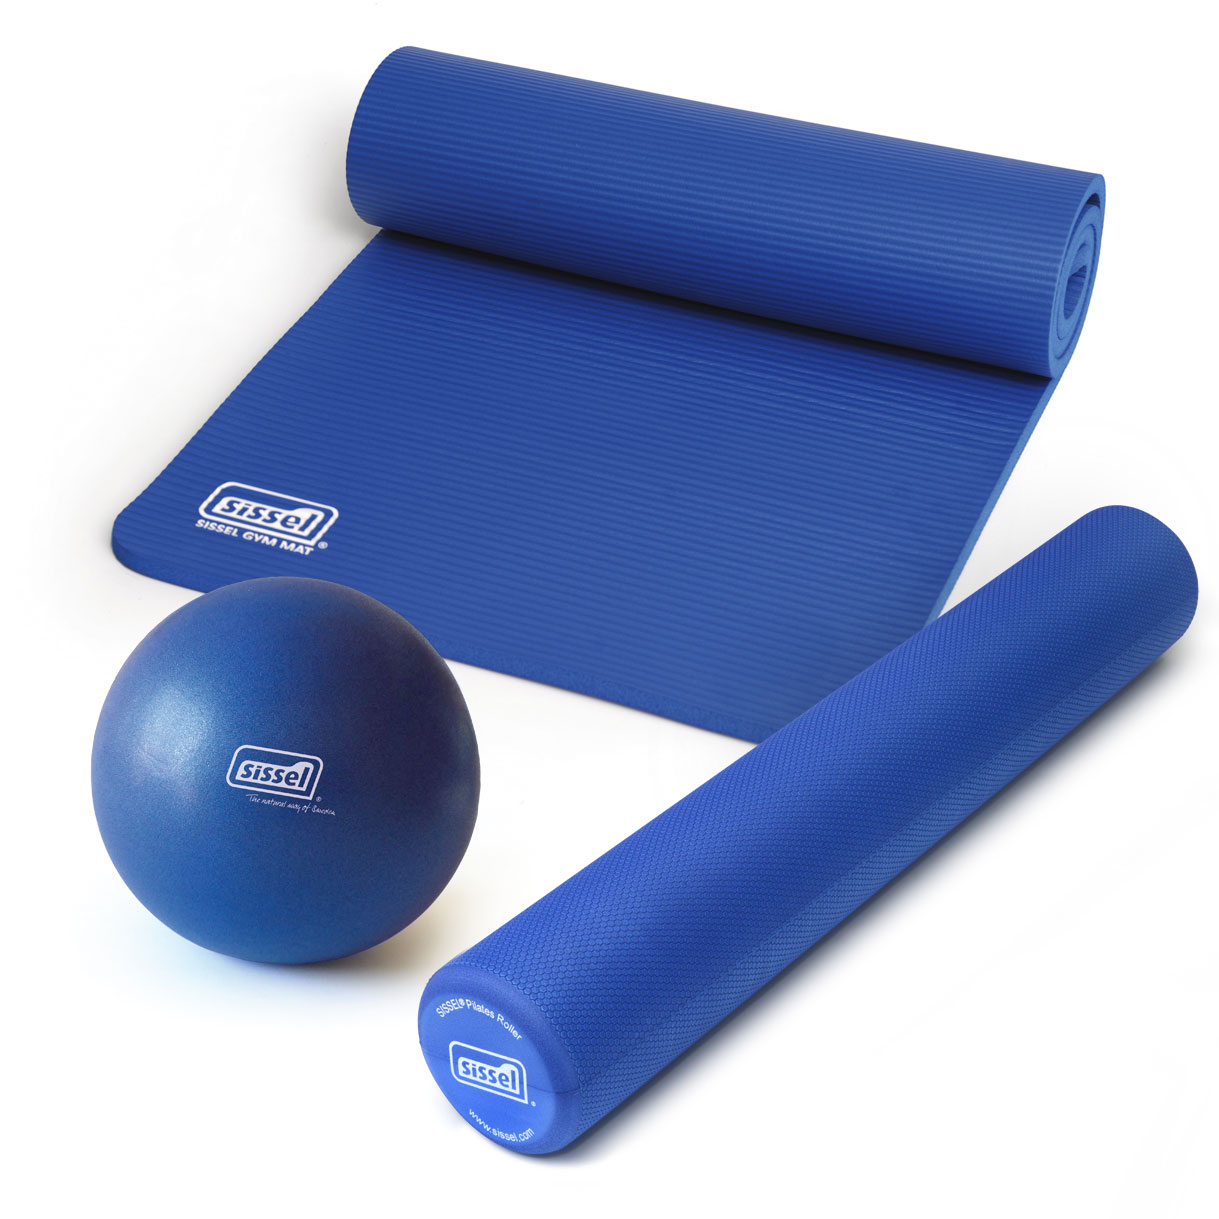 KIT PILATES CASA LITE PREMIUM BLU: Soft Ball, Rullo e Materassino